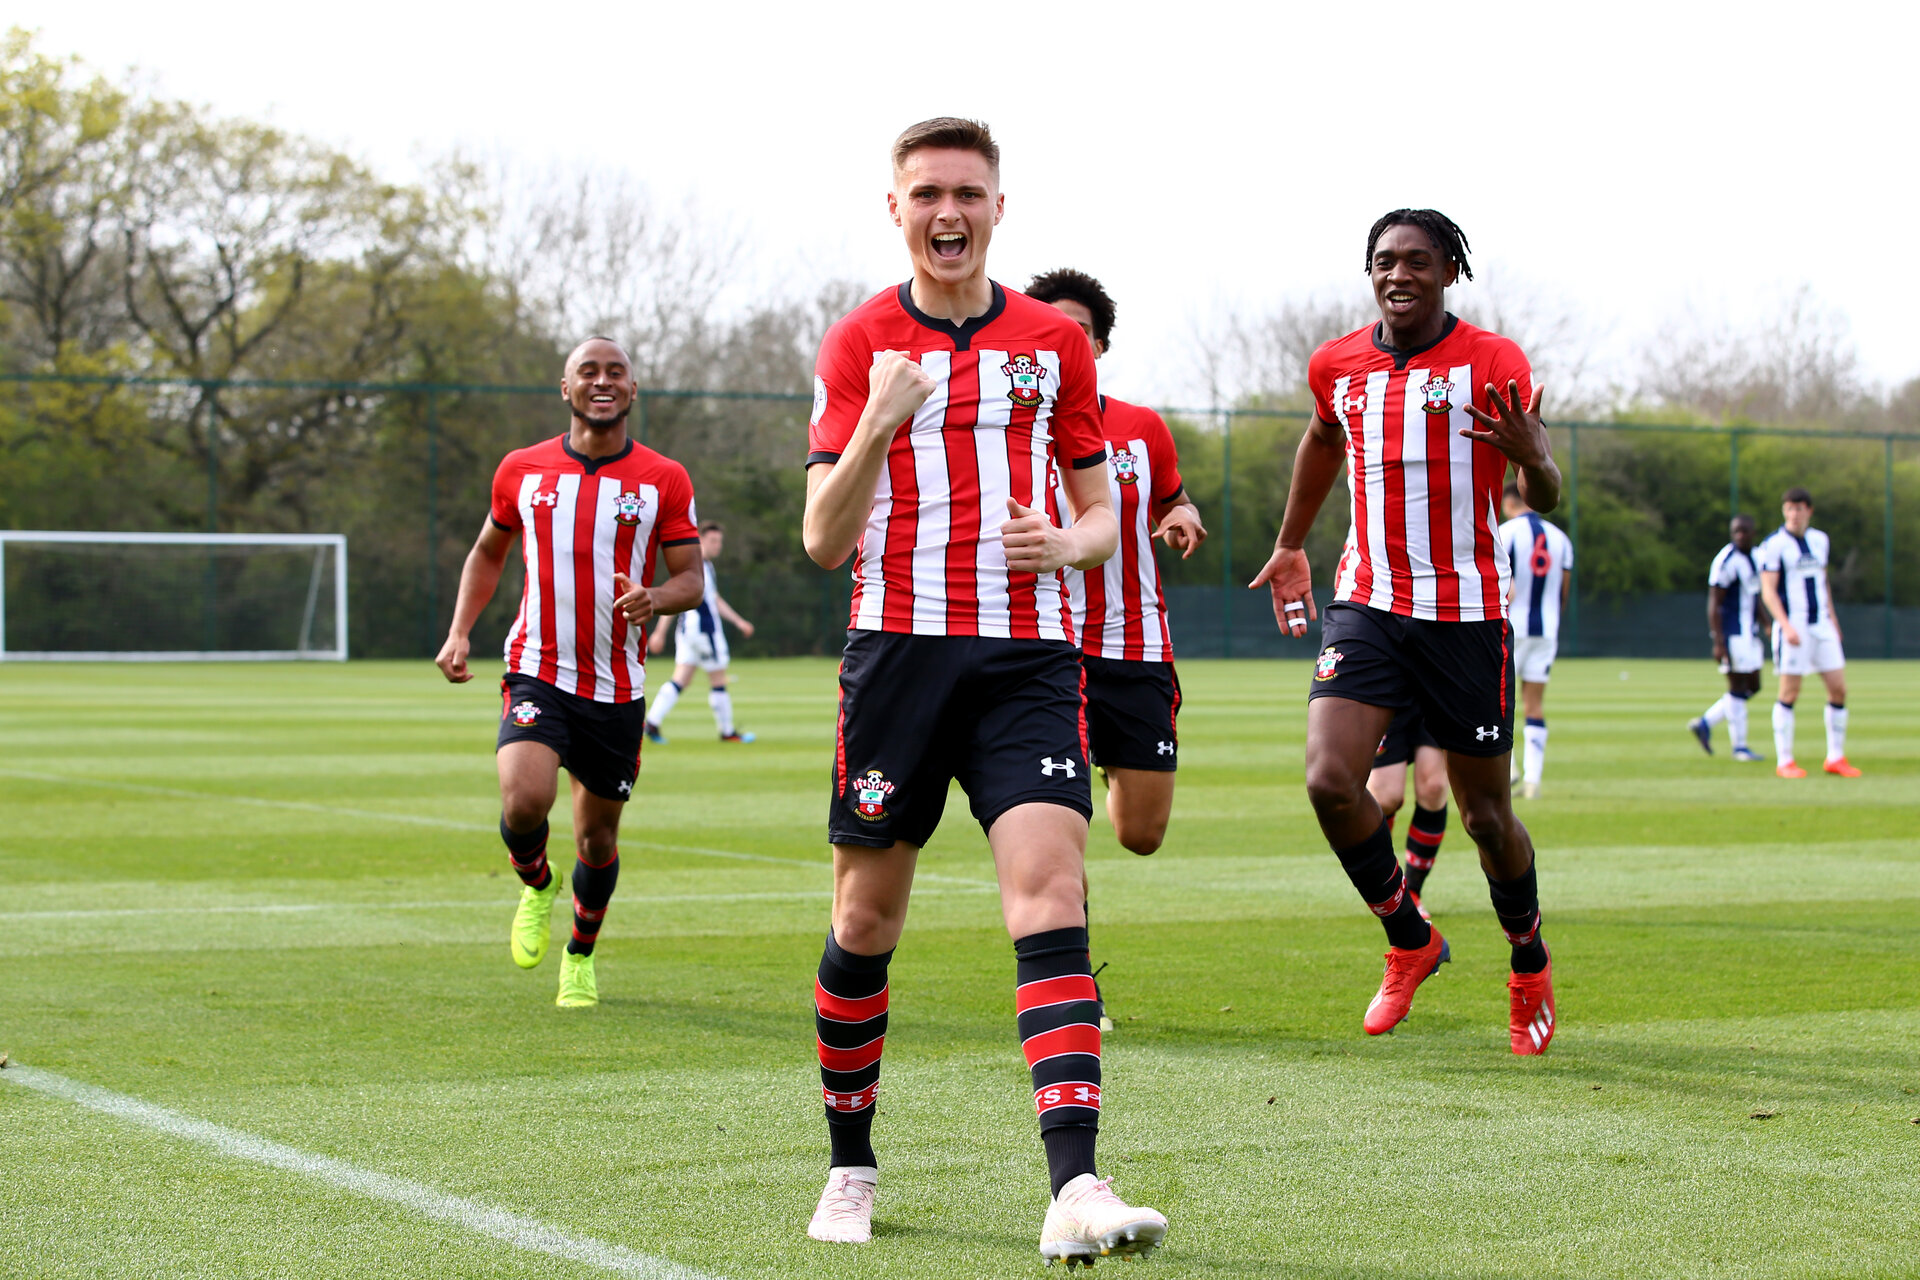 WEST BROMWICH, ENGLAND - APRIL 18: Will Smallbone of Southampton scores from the penalty spot (middle) during the Under 23s PL2 match between West Bromwich and Southampton FC pictured on April 18, 2019 in West Bromwich, England. (Photo by James Bridle - Southampton FC/Southampton FC via Getty Images)